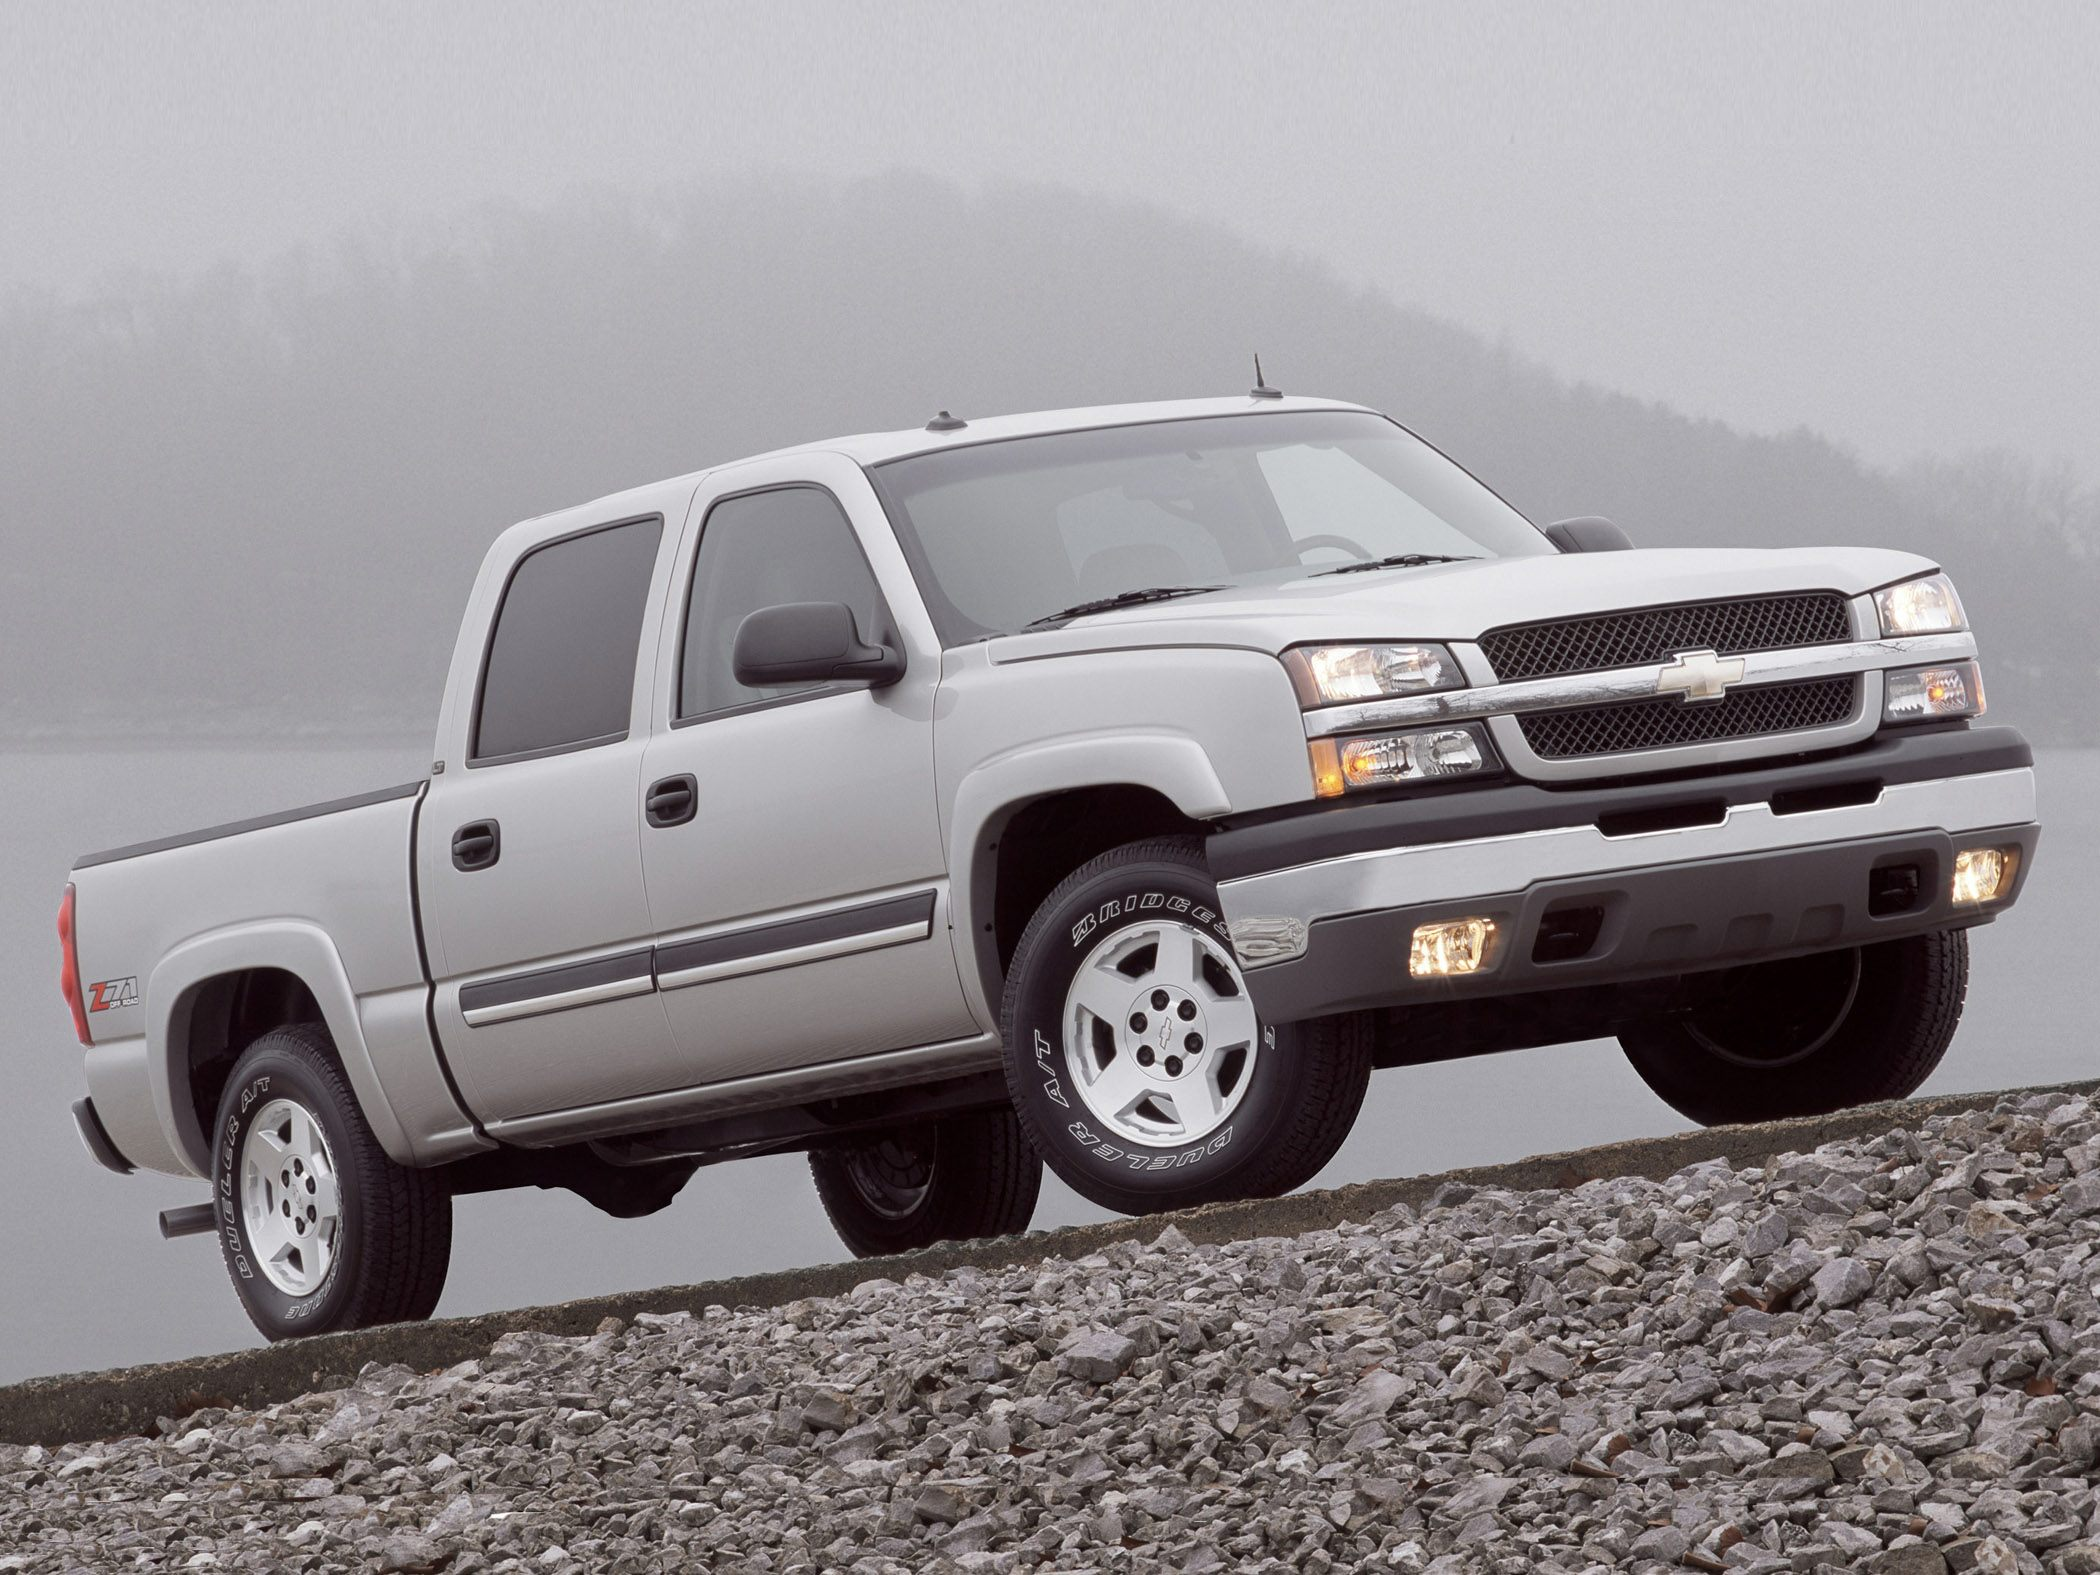 2005 Chevrolet Silverado 1500 LS H/D Crew Cab Crew Cab Pickup for sale in Waverly for $11,995 with 124,000 miles.